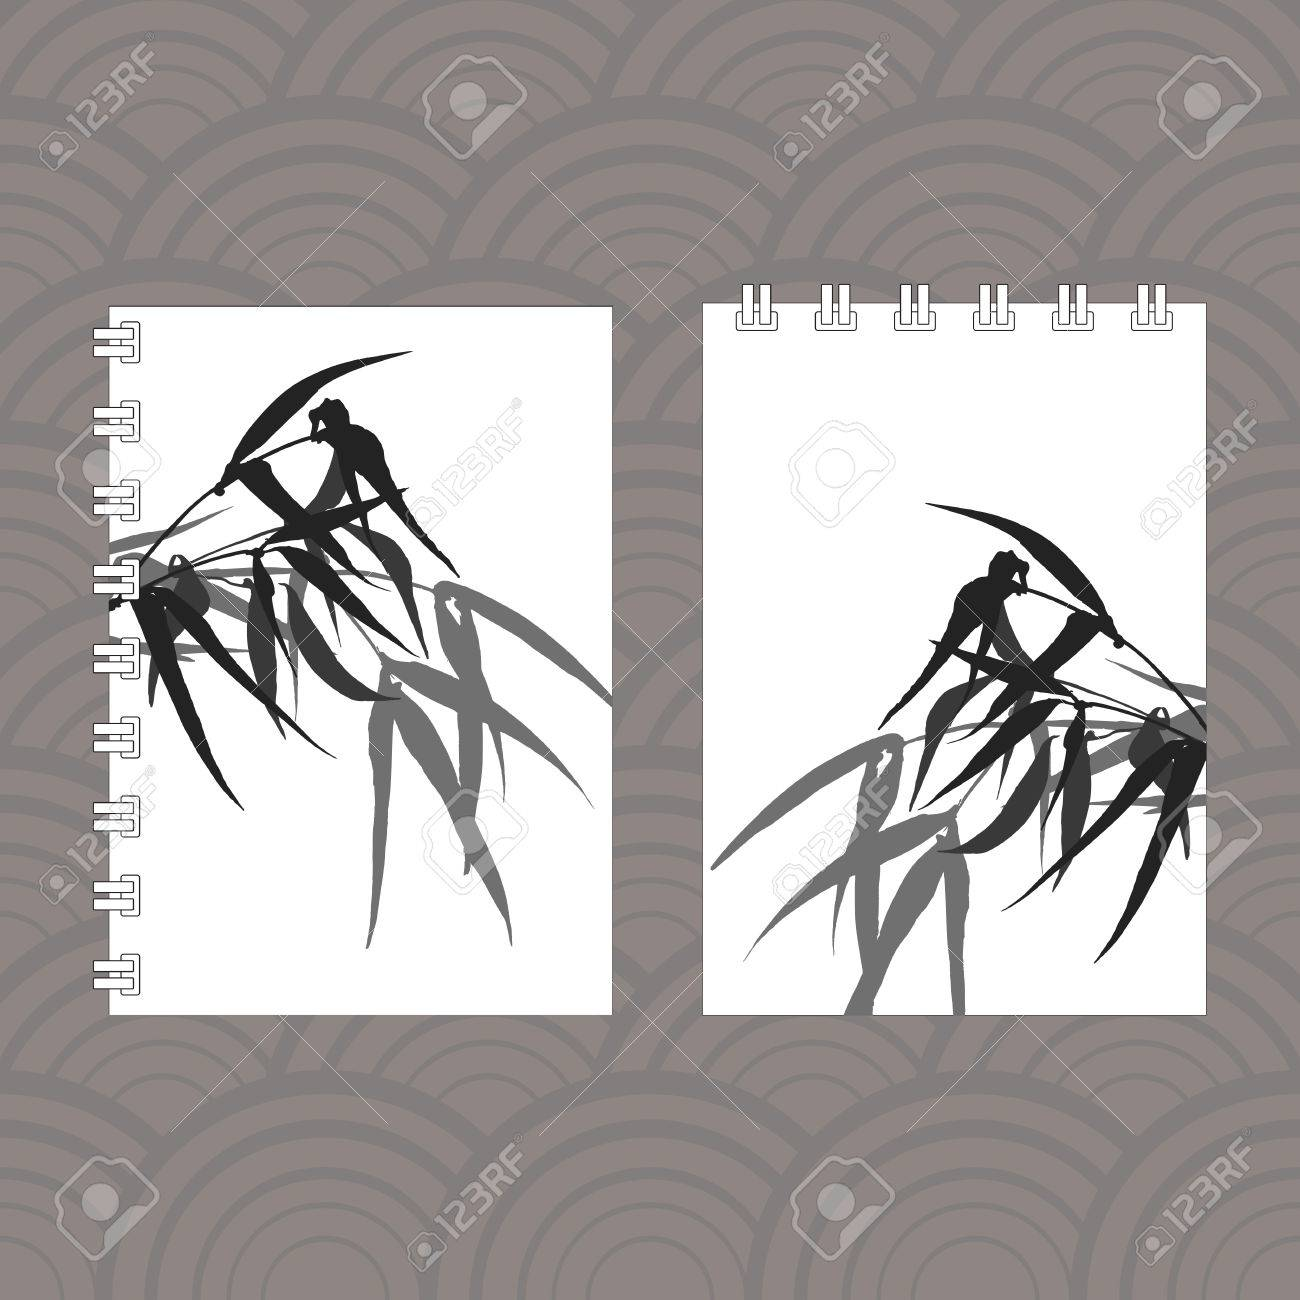 Notebook Cover Designwith The Image Of Hand Drawing Ink Illustration